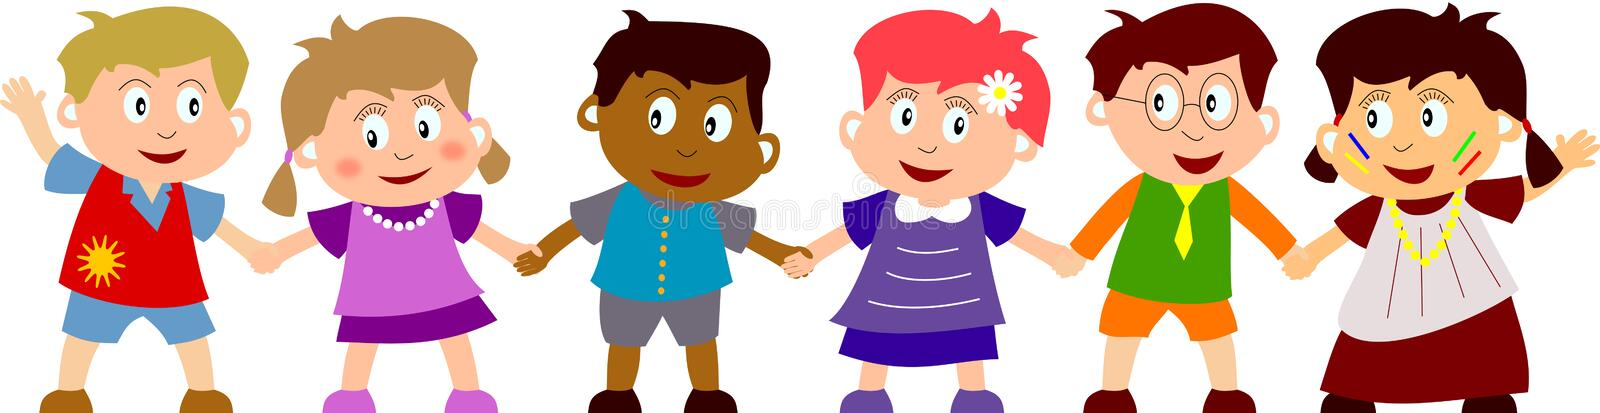 Happy Kids. Group of six happy multiculture kids holding hands. You can find many other illustrations of kids in my portfolio